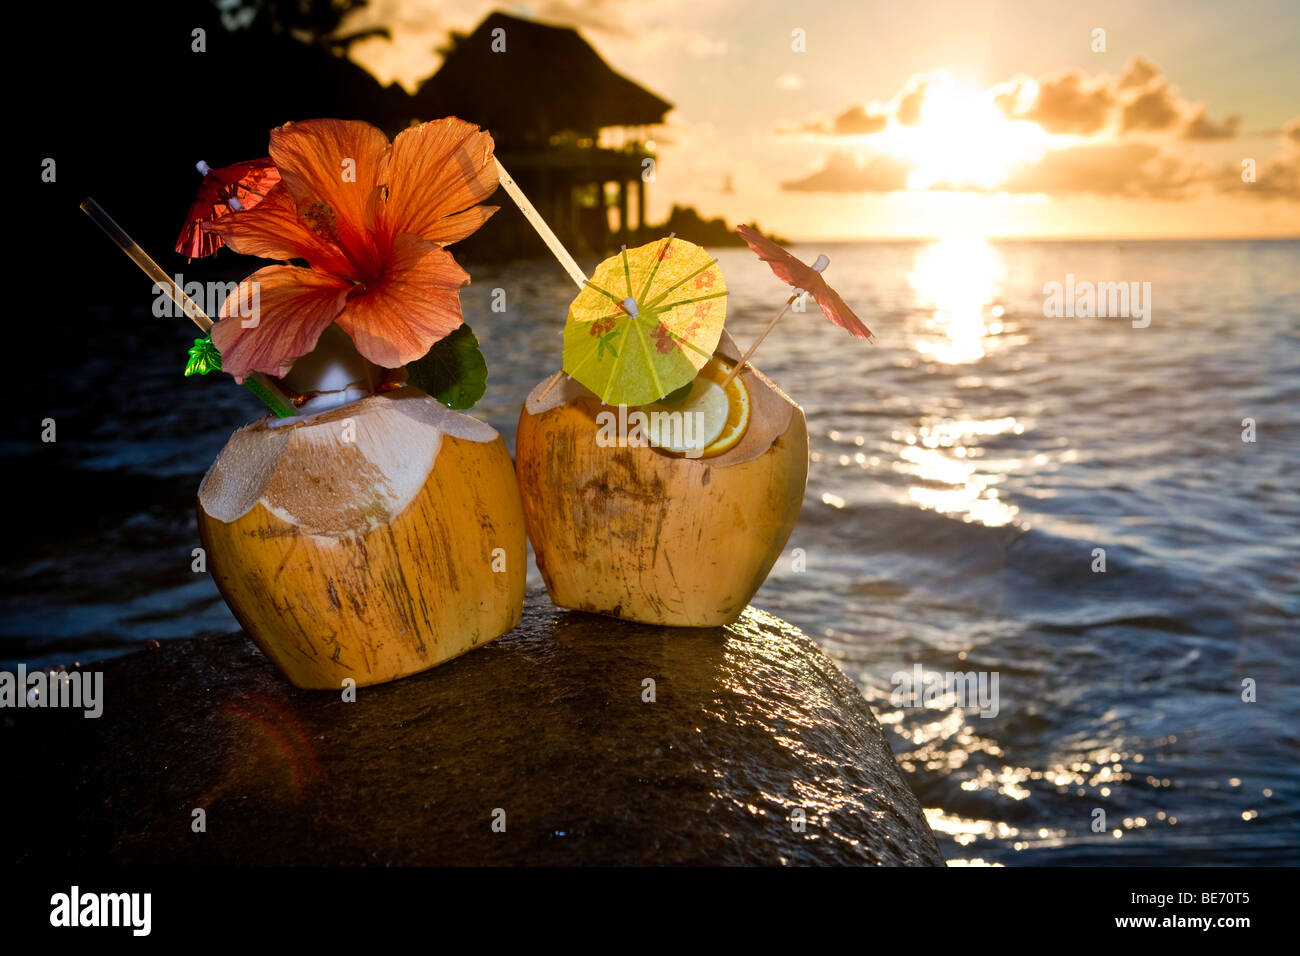 Two coconuts with cocktails and decorations on a granite rock at sunset, Seychelles, Indian Ocean, Africa - Stock Image